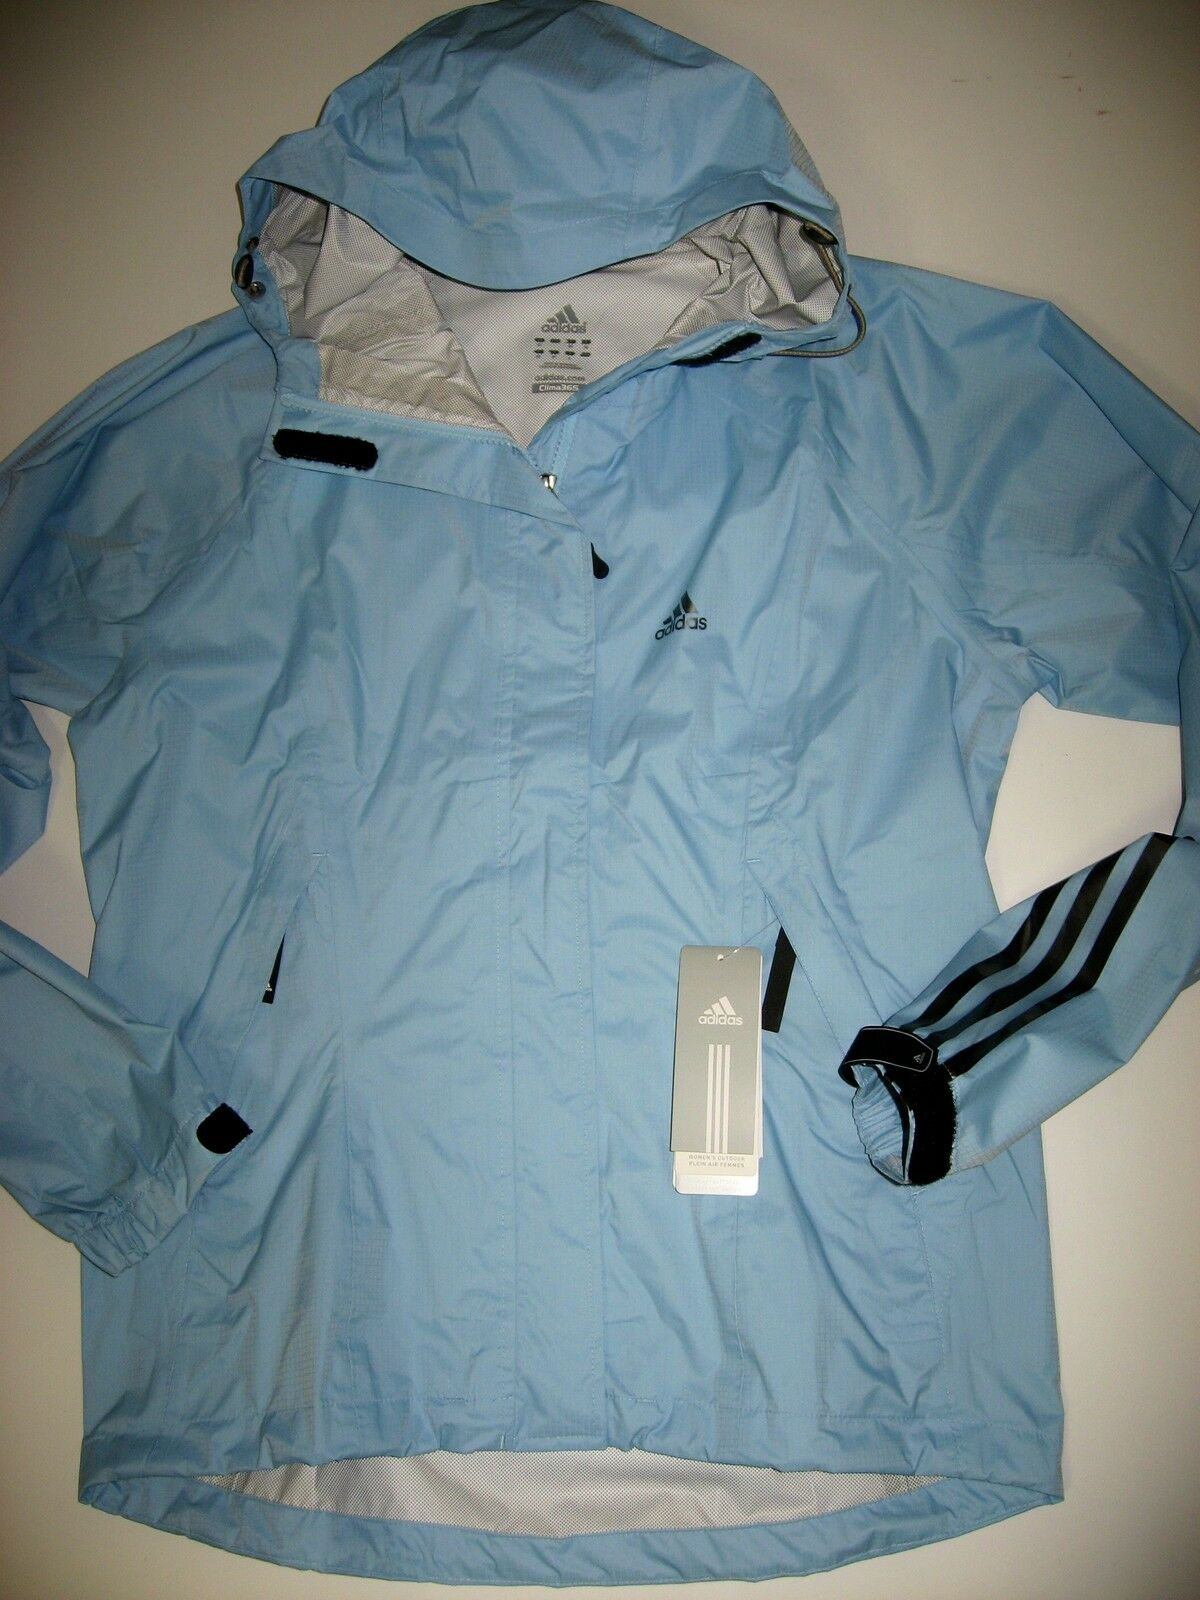 Adidas e13530 ya que-lluvia chaqueta impermeable transpirable min. packmass traillite